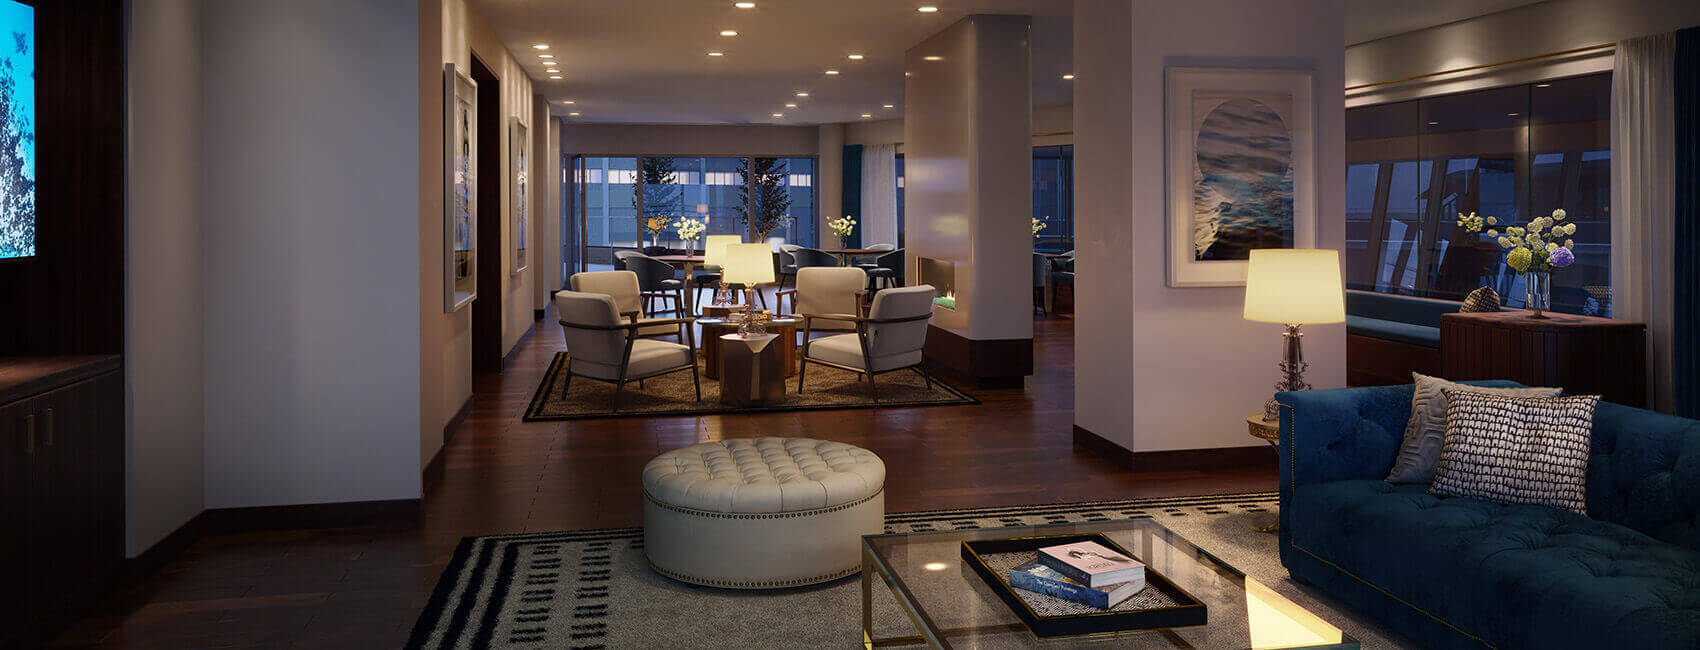 PIER 4 Condos for Sale | Lobby Club Room by Tishman Speyer | Amenity